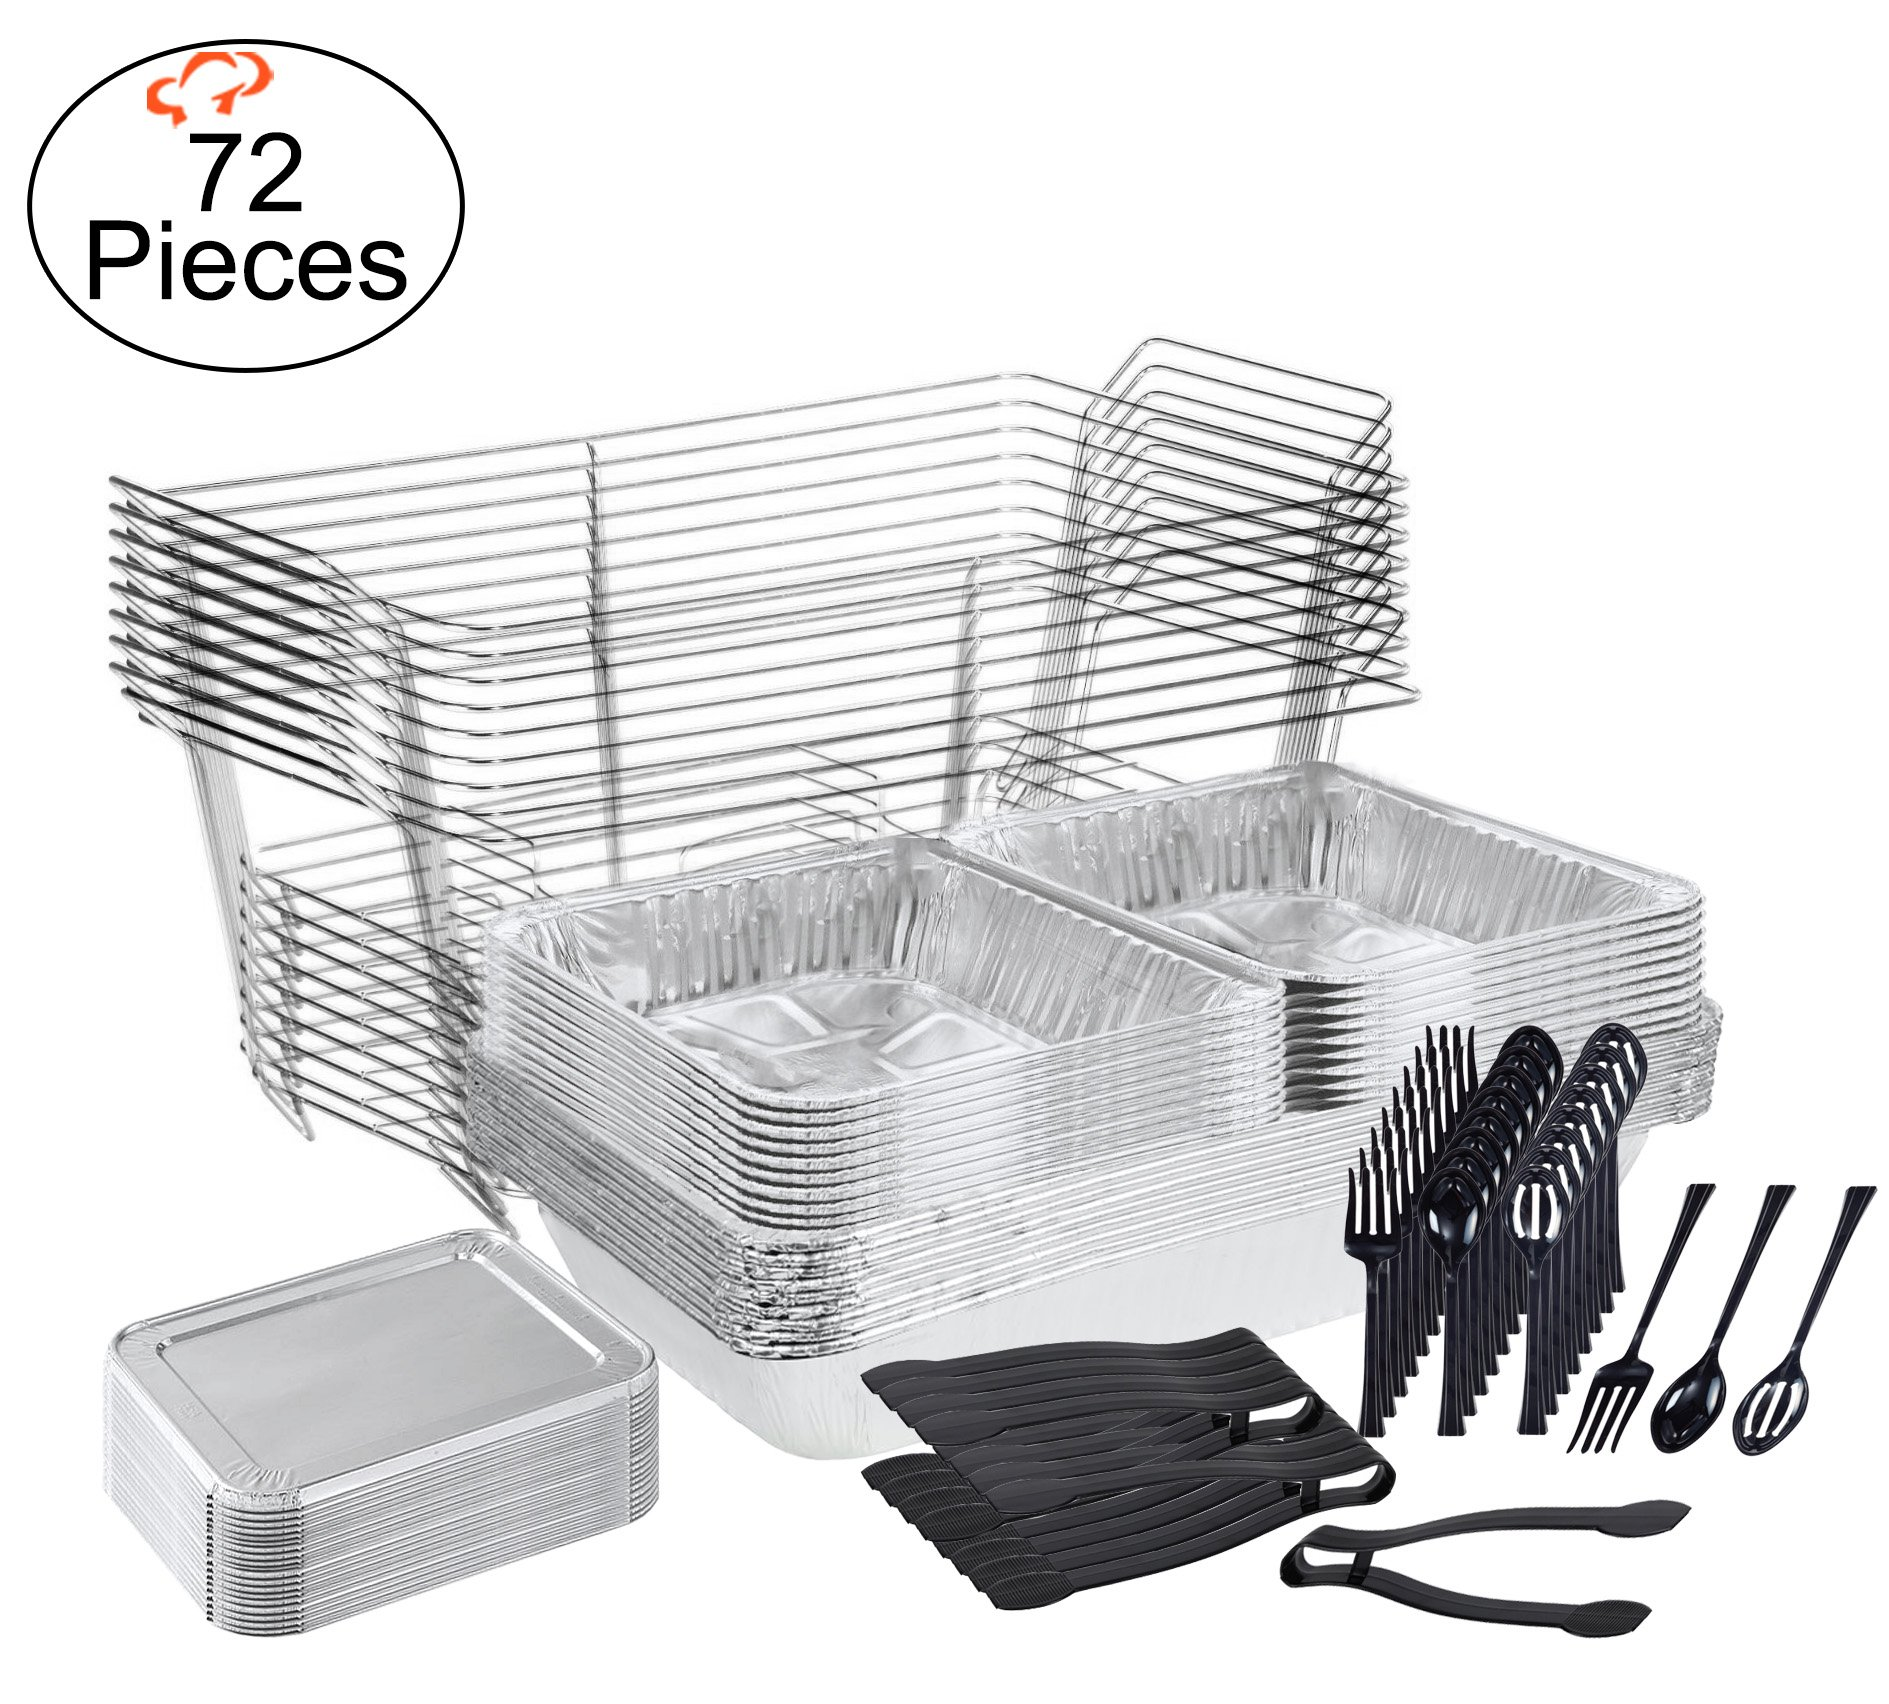 TigerChef 0026-CATERSET Catering Set Serving Dishes for Parties Includes Chafer Pans Set and Disposable Serving Utensils, Spoons and Tongs, Complete Party Serving Supplies (Pack of 72) by Tiger Chef